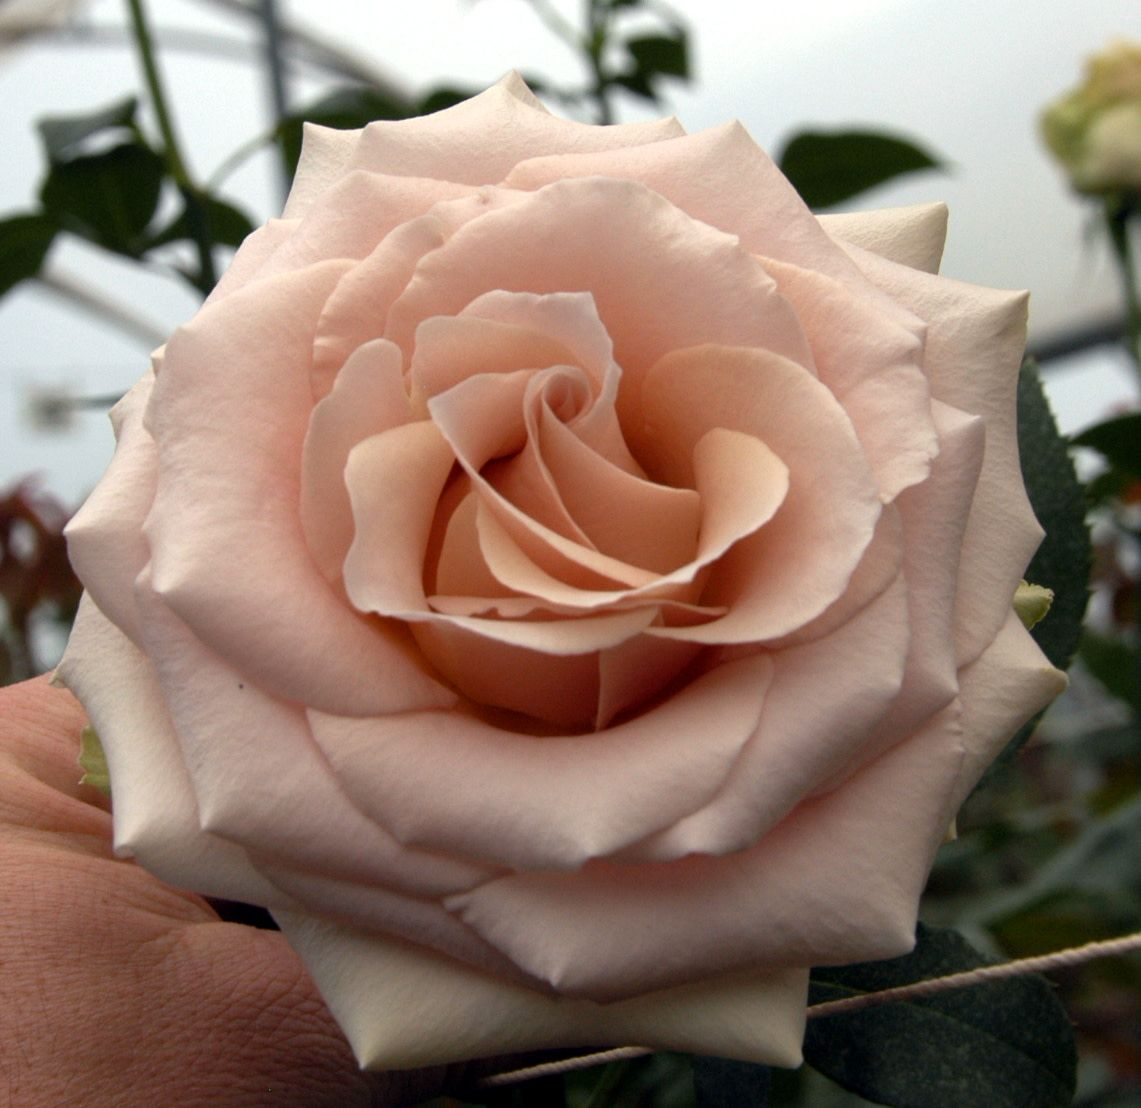 With an on-trend neutral color palette that's both romantic and sophisticated, Quicksand spans a close range of delicate, neutral tones. Her dark cream petals are infused with a soft, sandy blush color reminiscent of pink clay. Learn more about this variety at #quicksandroses #gardenroses #rose #flowers